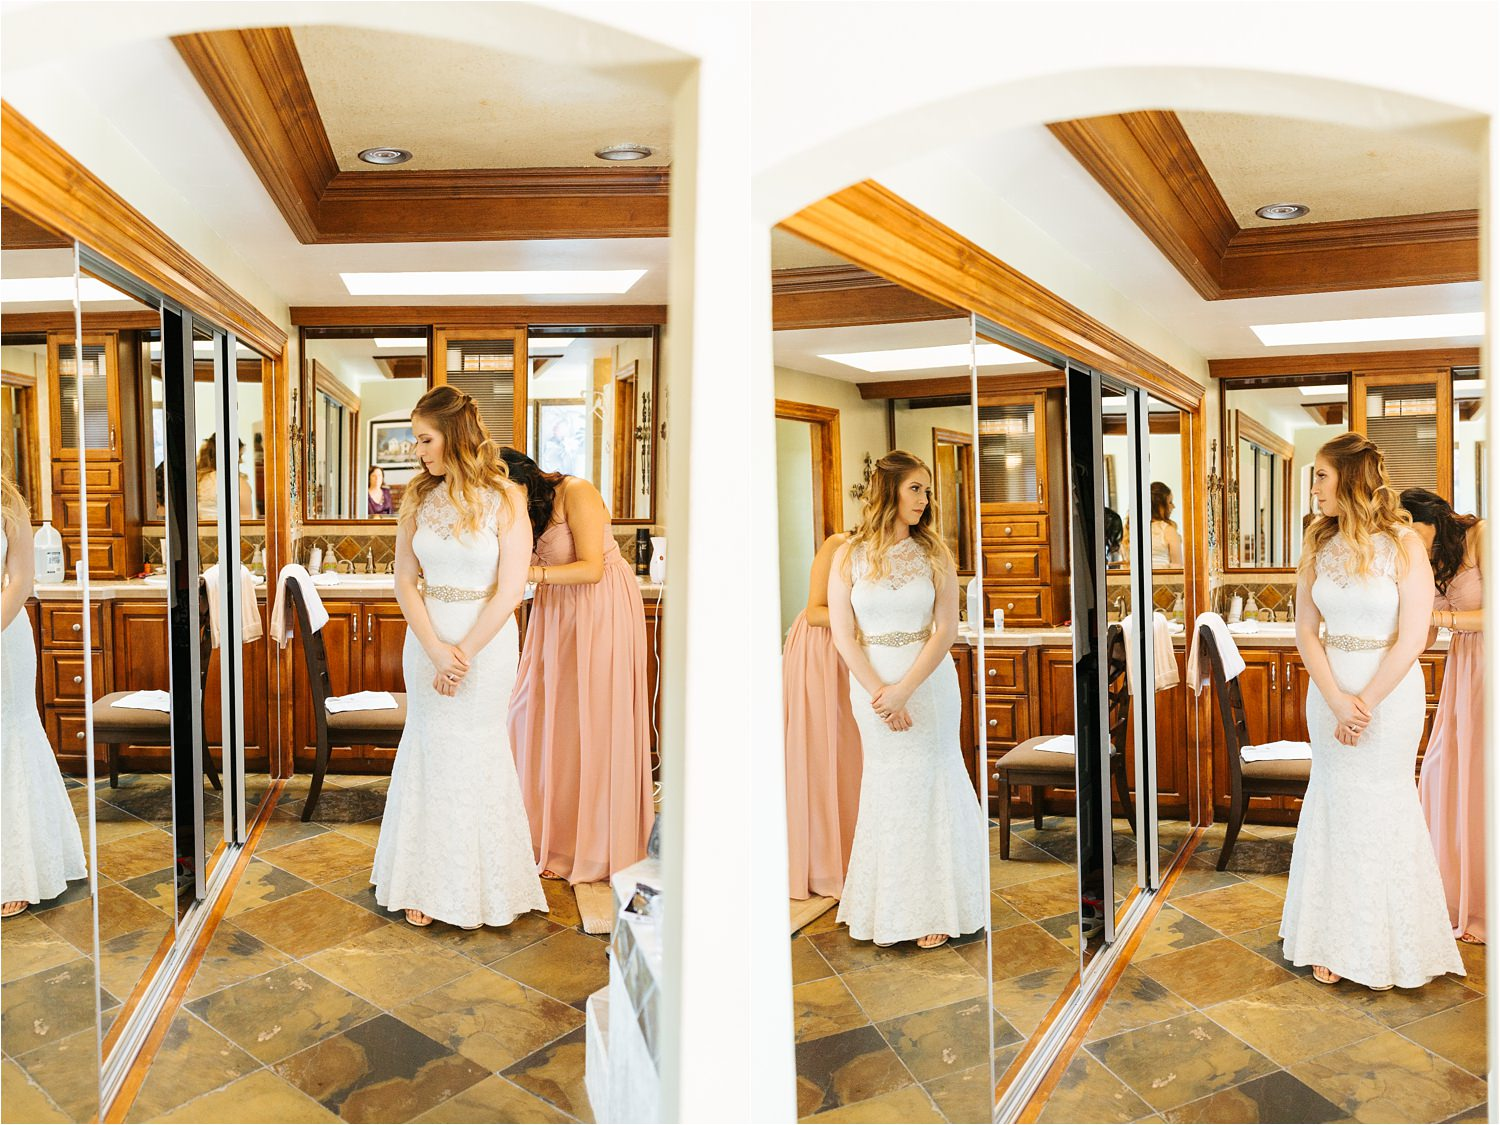 Mirror Photos of bride getting ready - https://brittneyhannonphotography.com